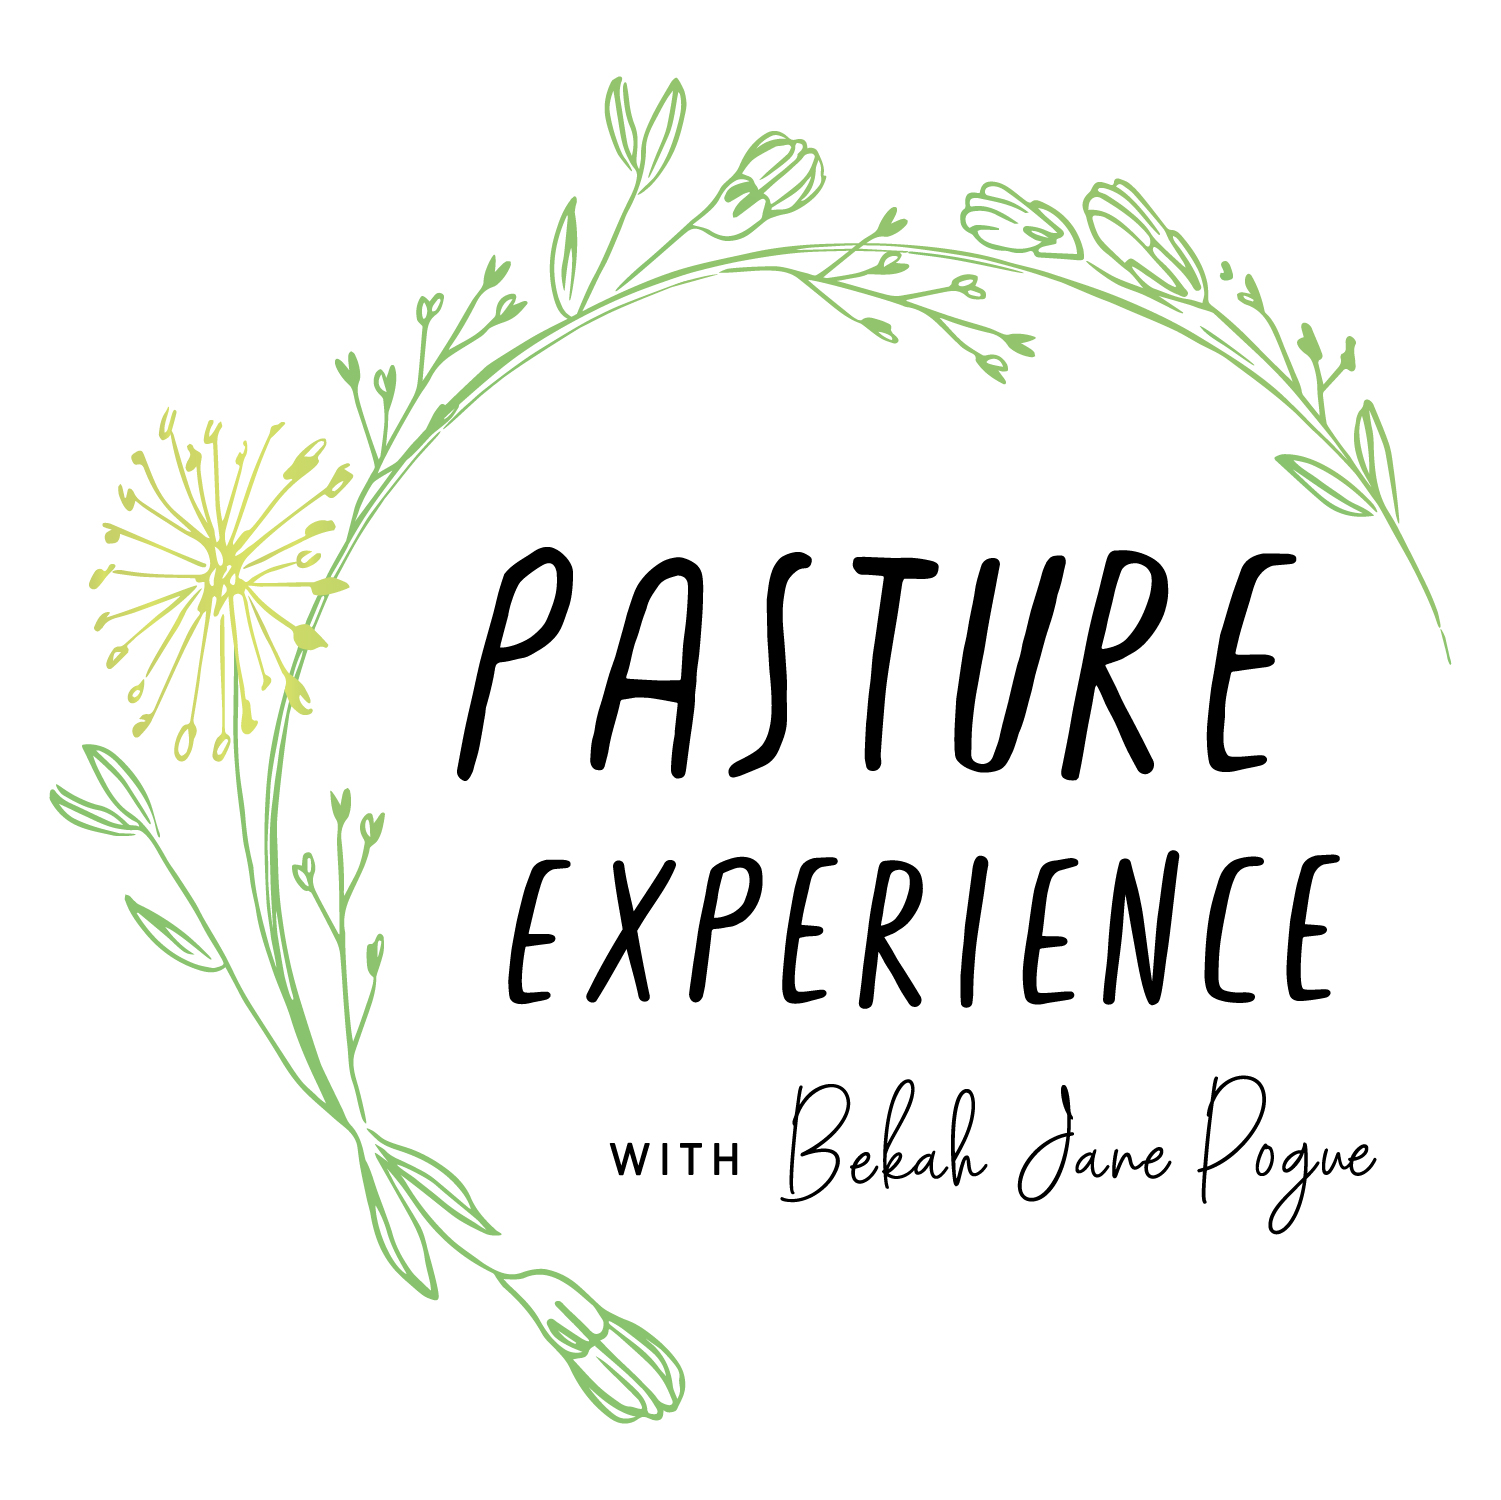 Pasture Experience